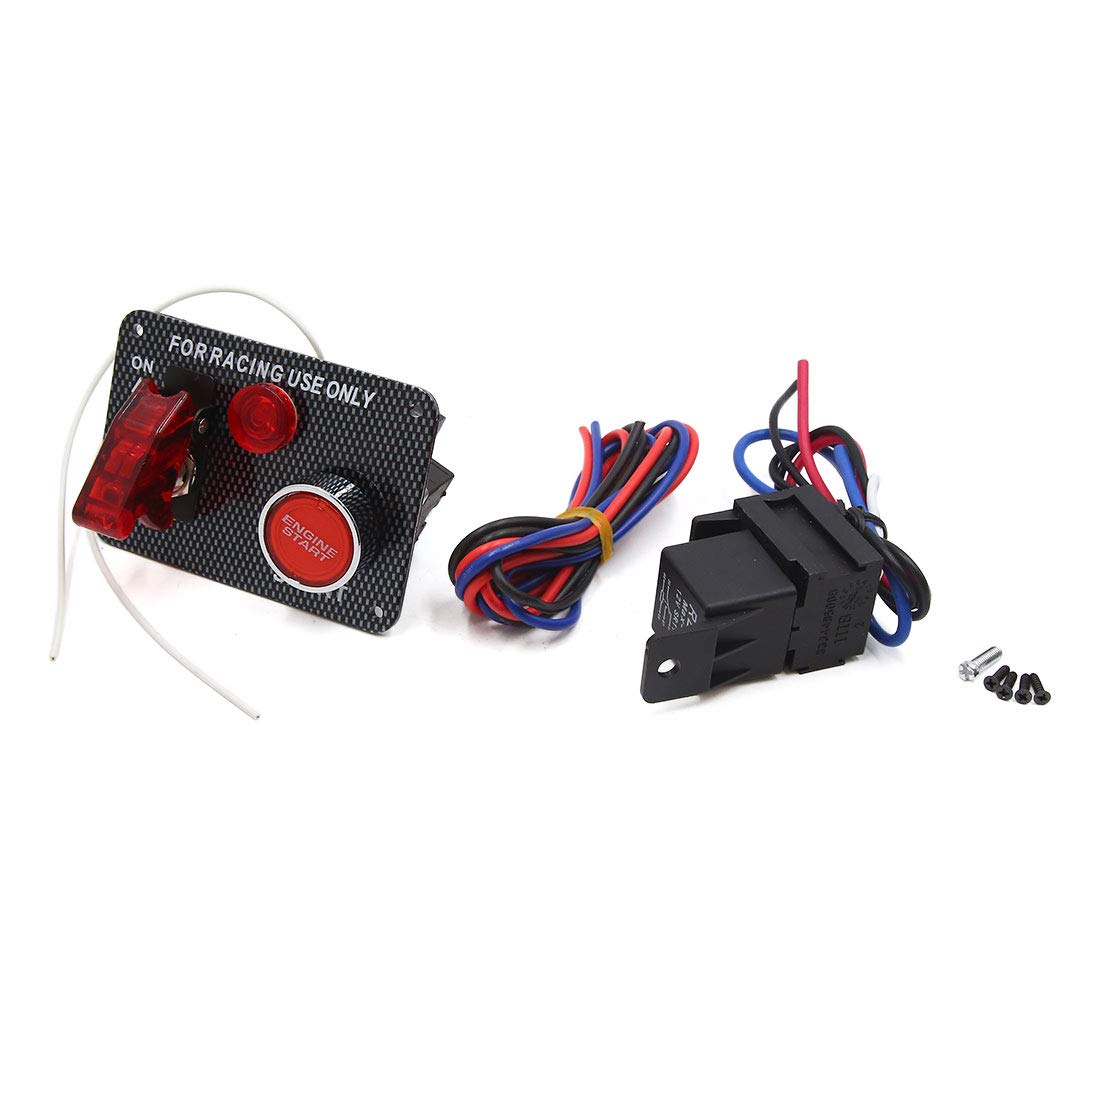 uxcell DC 12V Red LED Ignition Switch Panel Engine Start Push Button for Racing Car